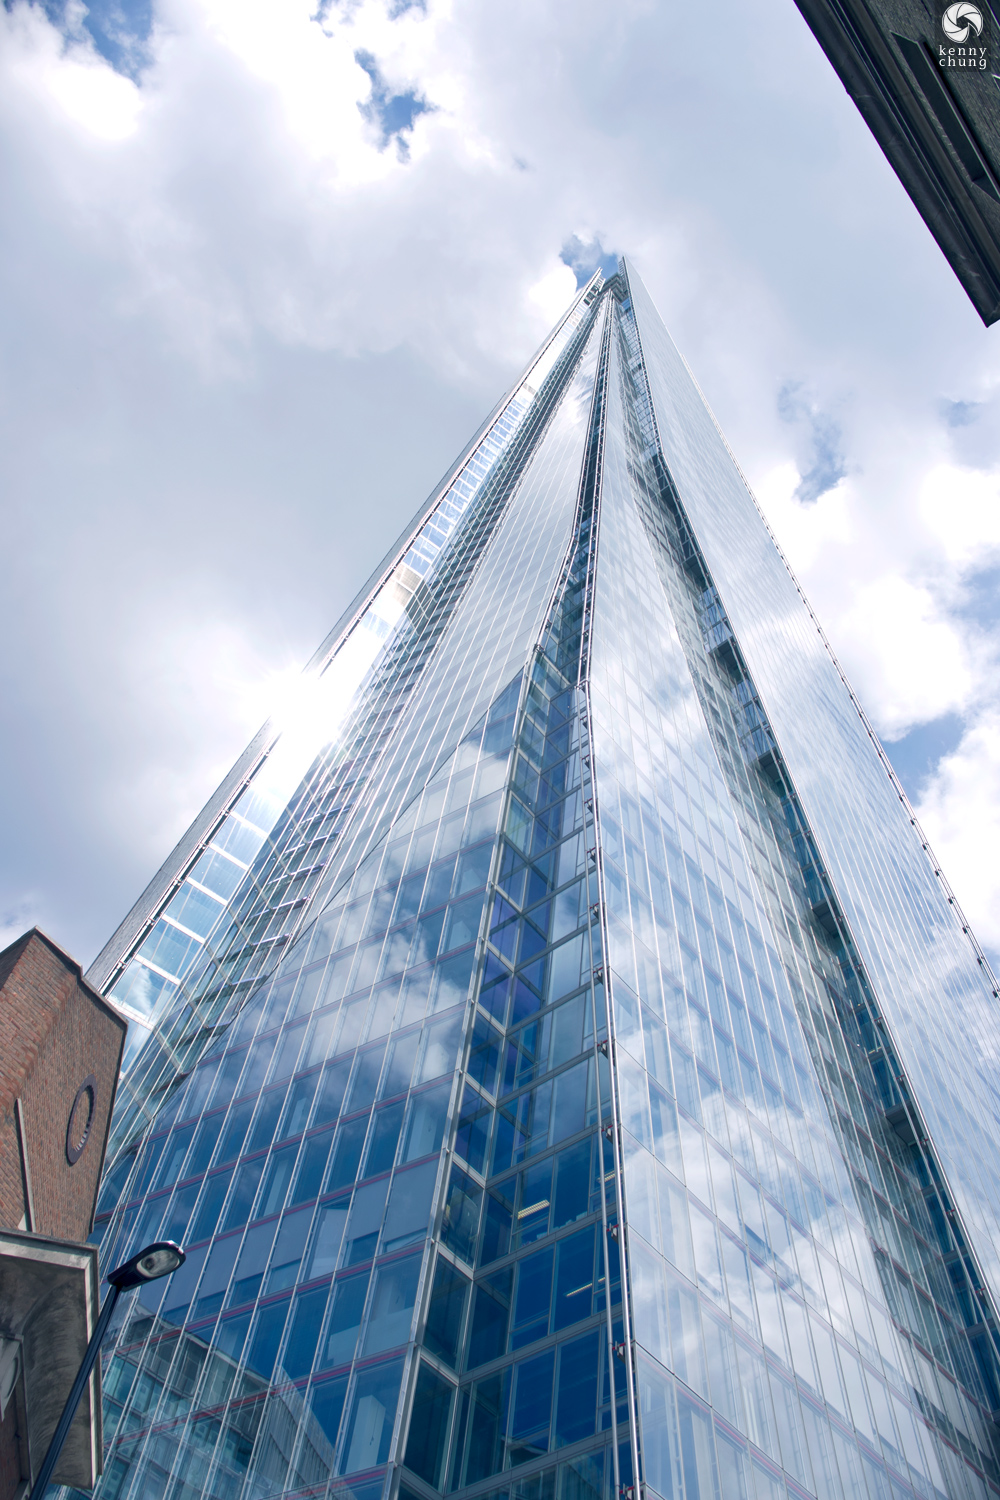 The Shard from street level in Southwark, London